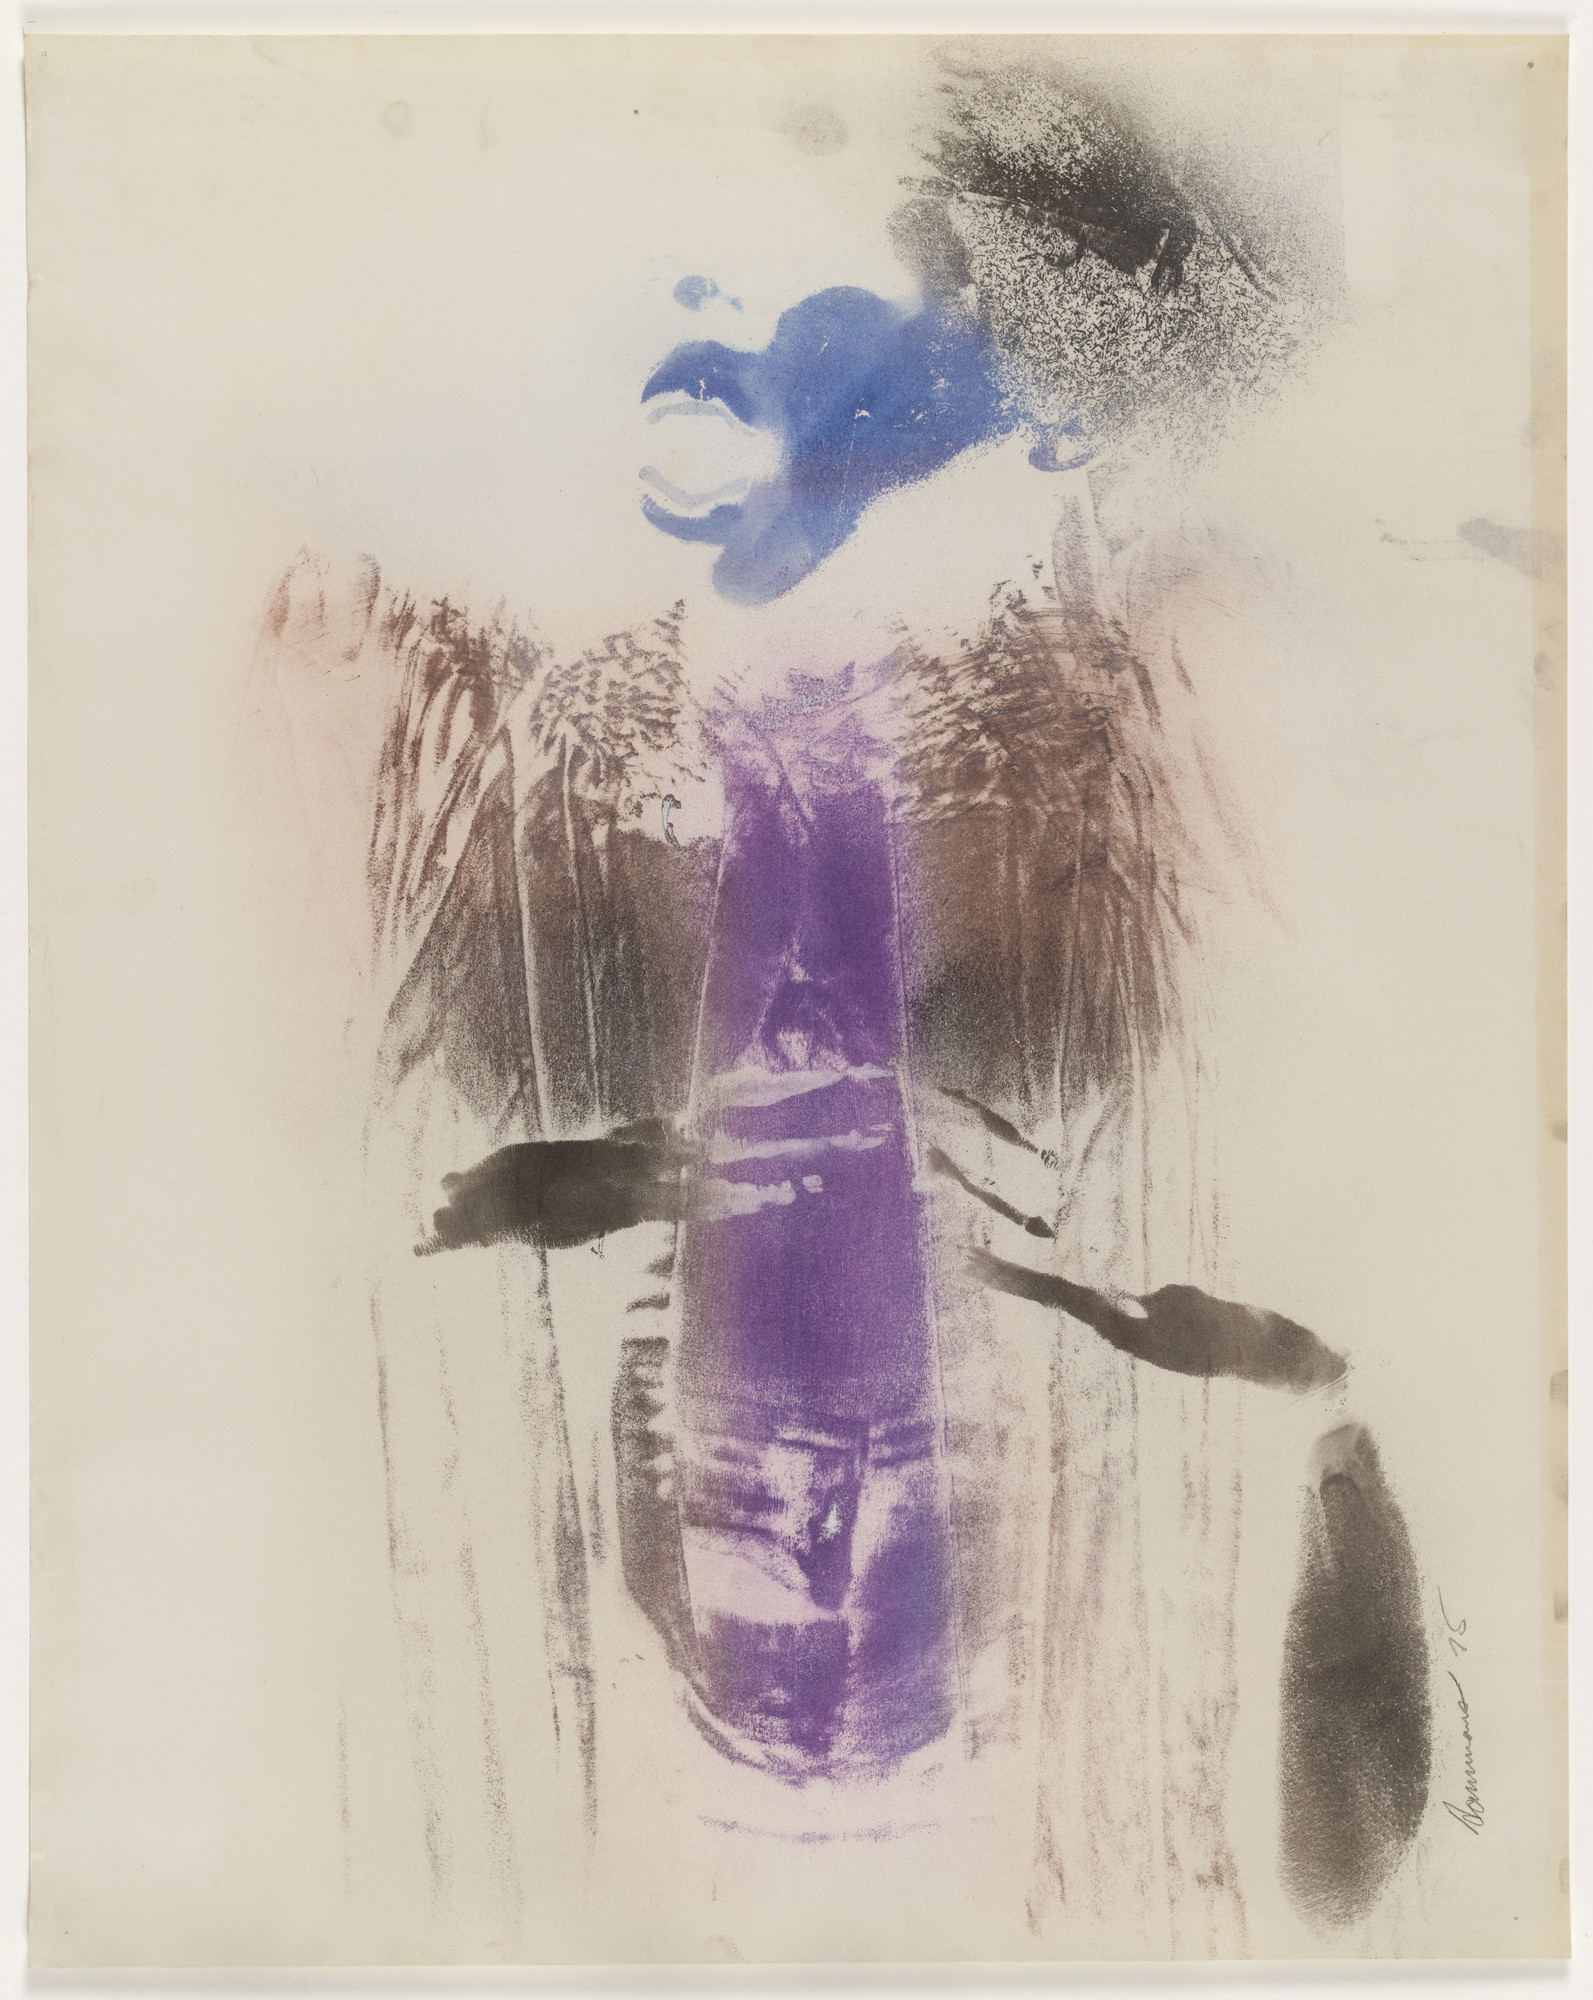 David Hammons. Body Print. 1975